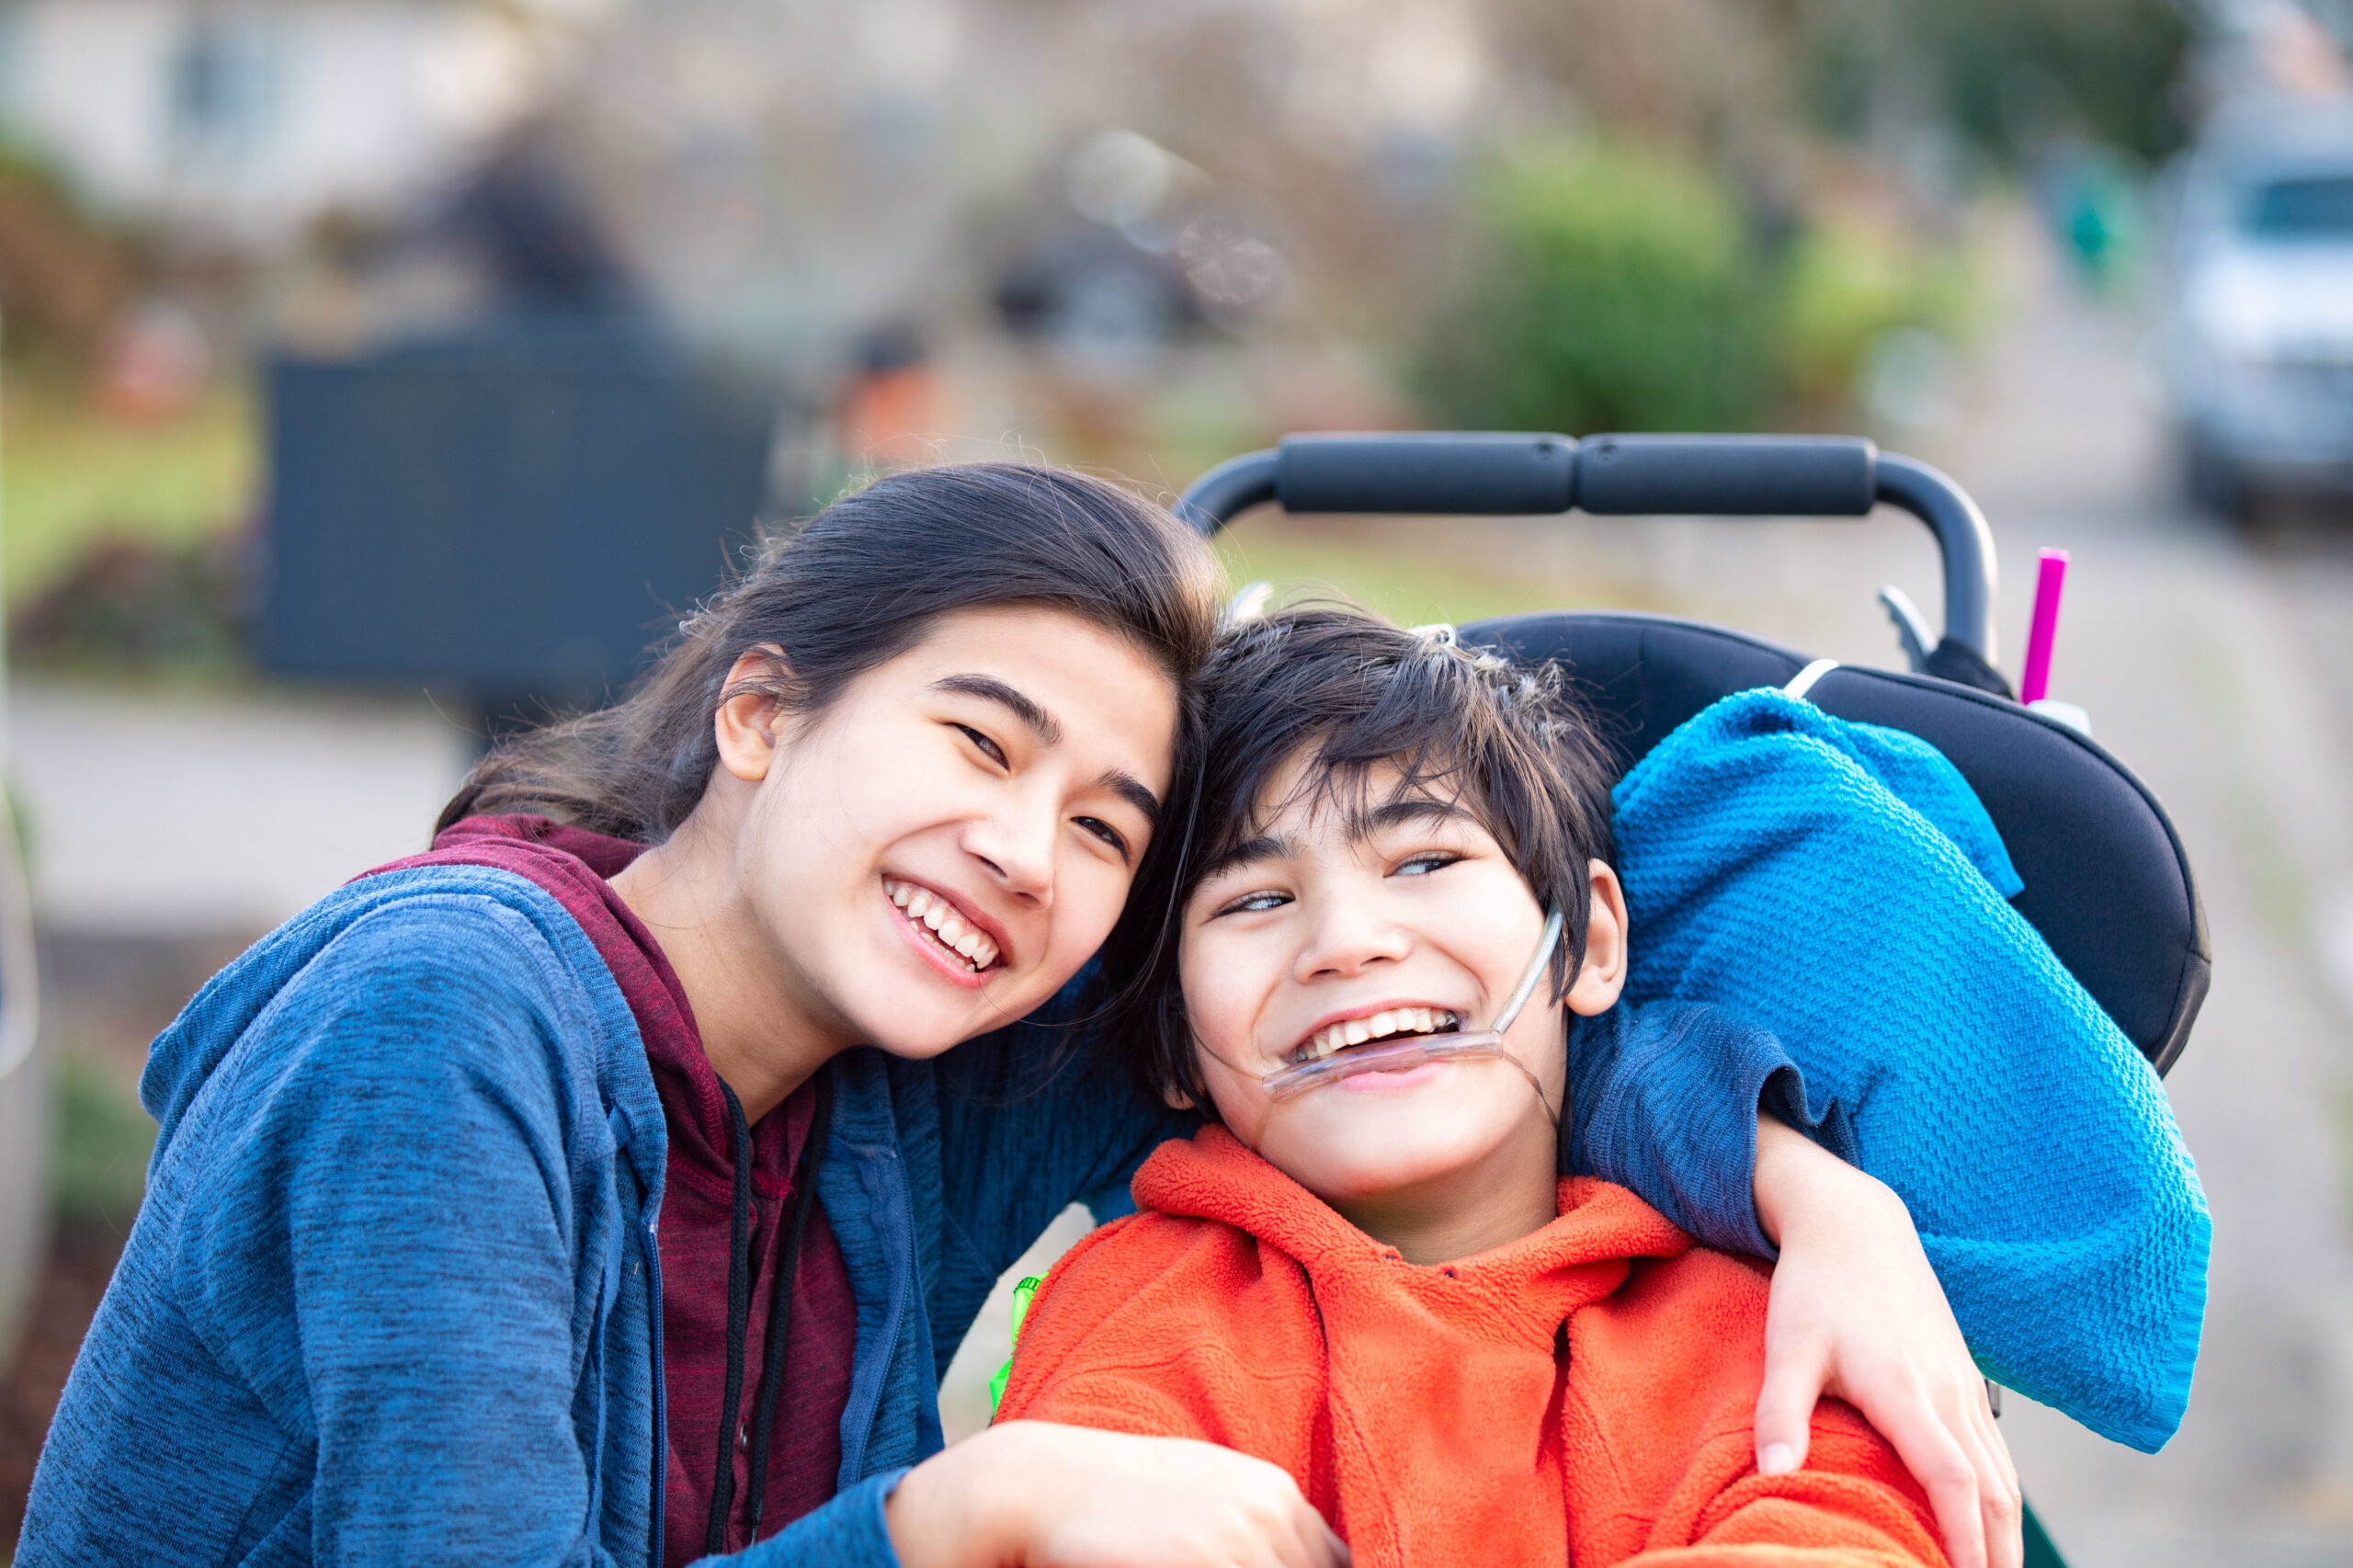 Big sister hugging disabled brother in wheelchair outdoors, smiling